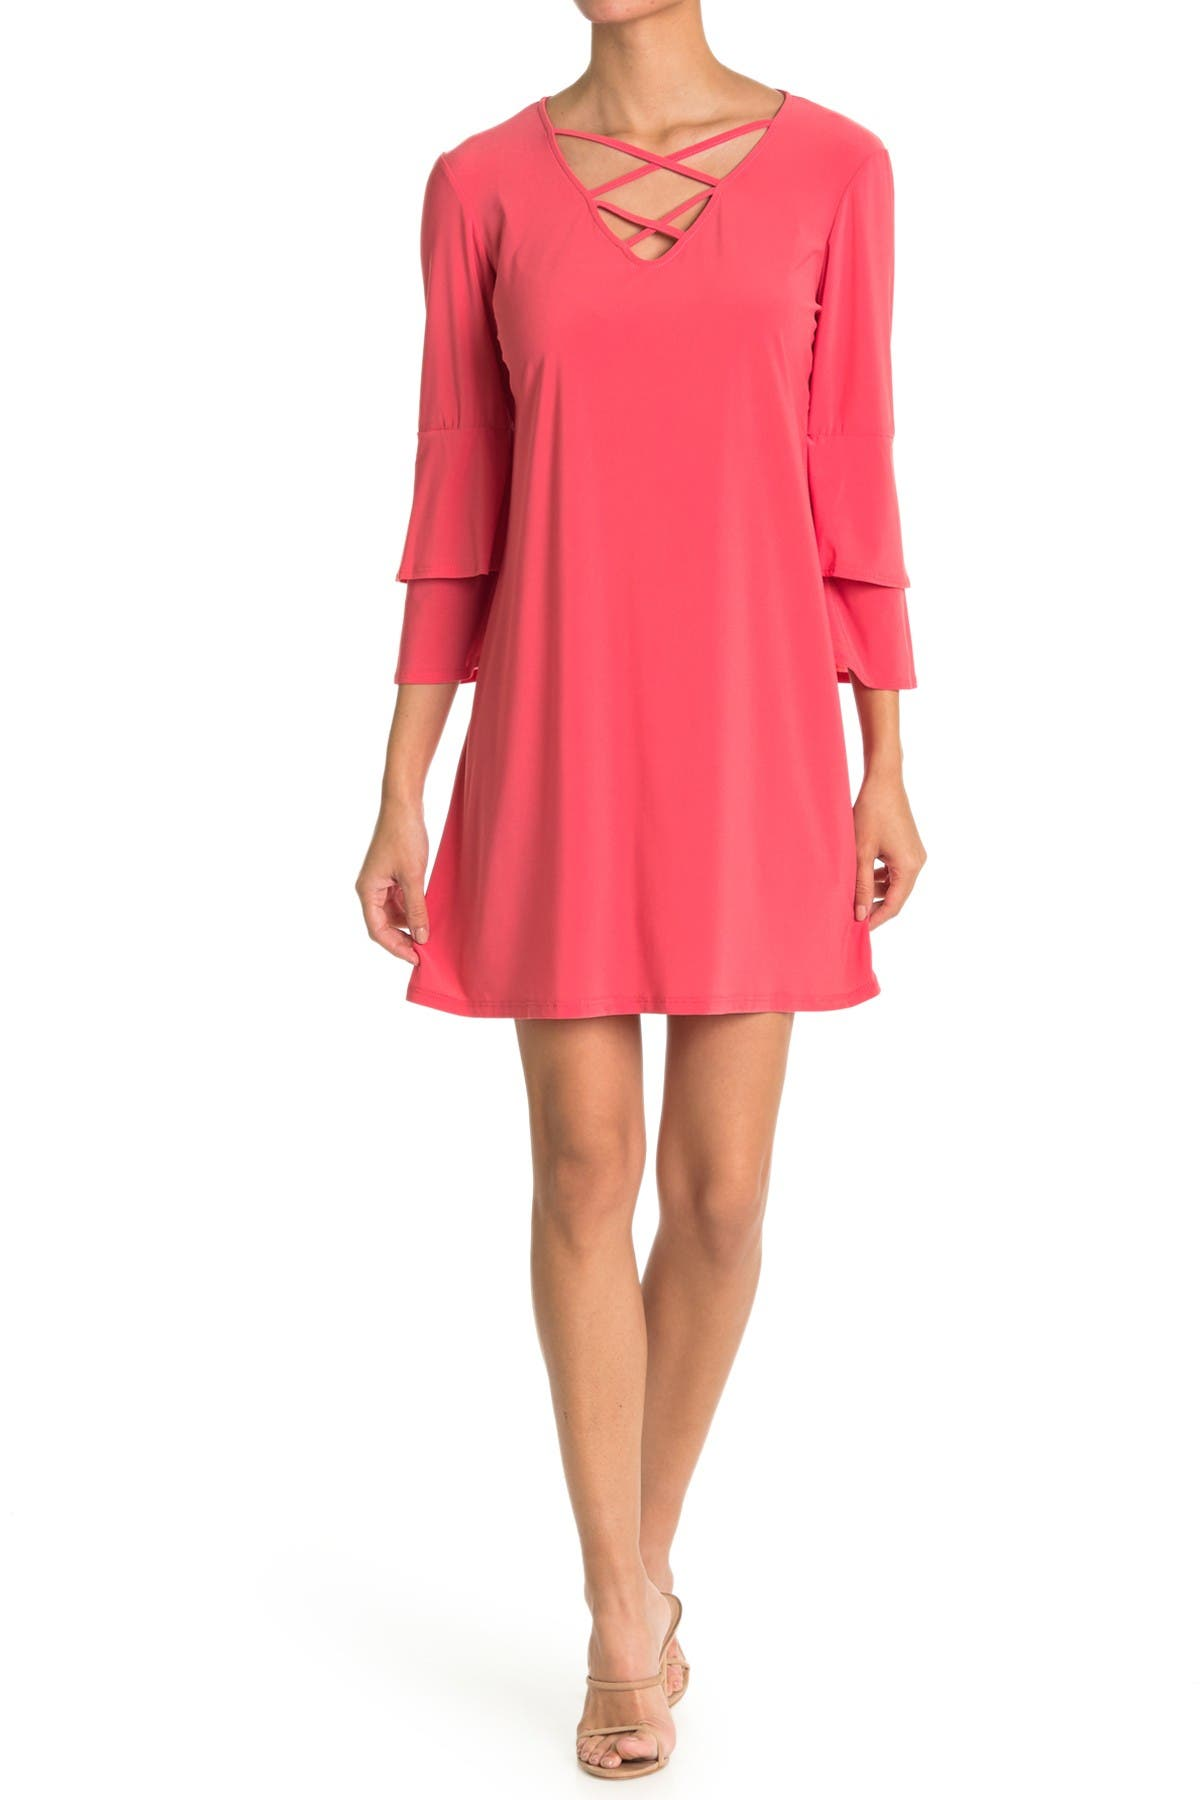 Image of TASH + SOPHIE Strappy Tiered Sleeve Shift Dress